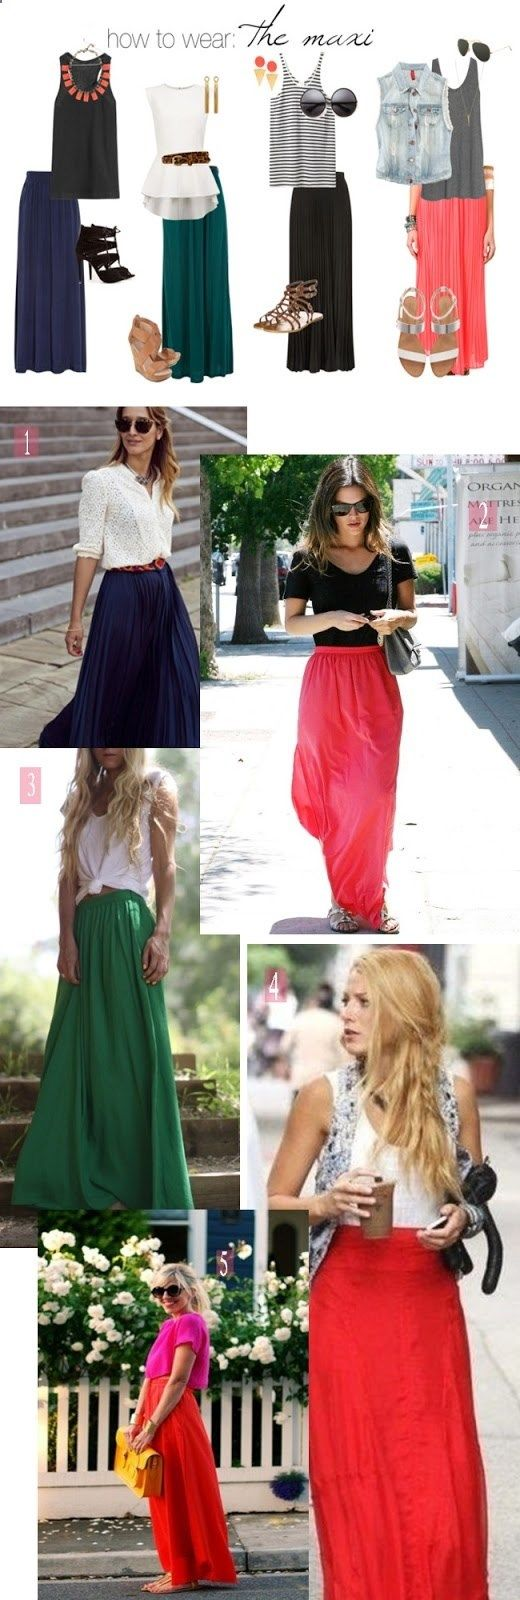 how to wear: the maxi skirt for summer  Outift for • teens • movies • girls • women •. summer • fall • spring • winter • outfit ideas • dates • parties Polyvore :) Catalina Christiano